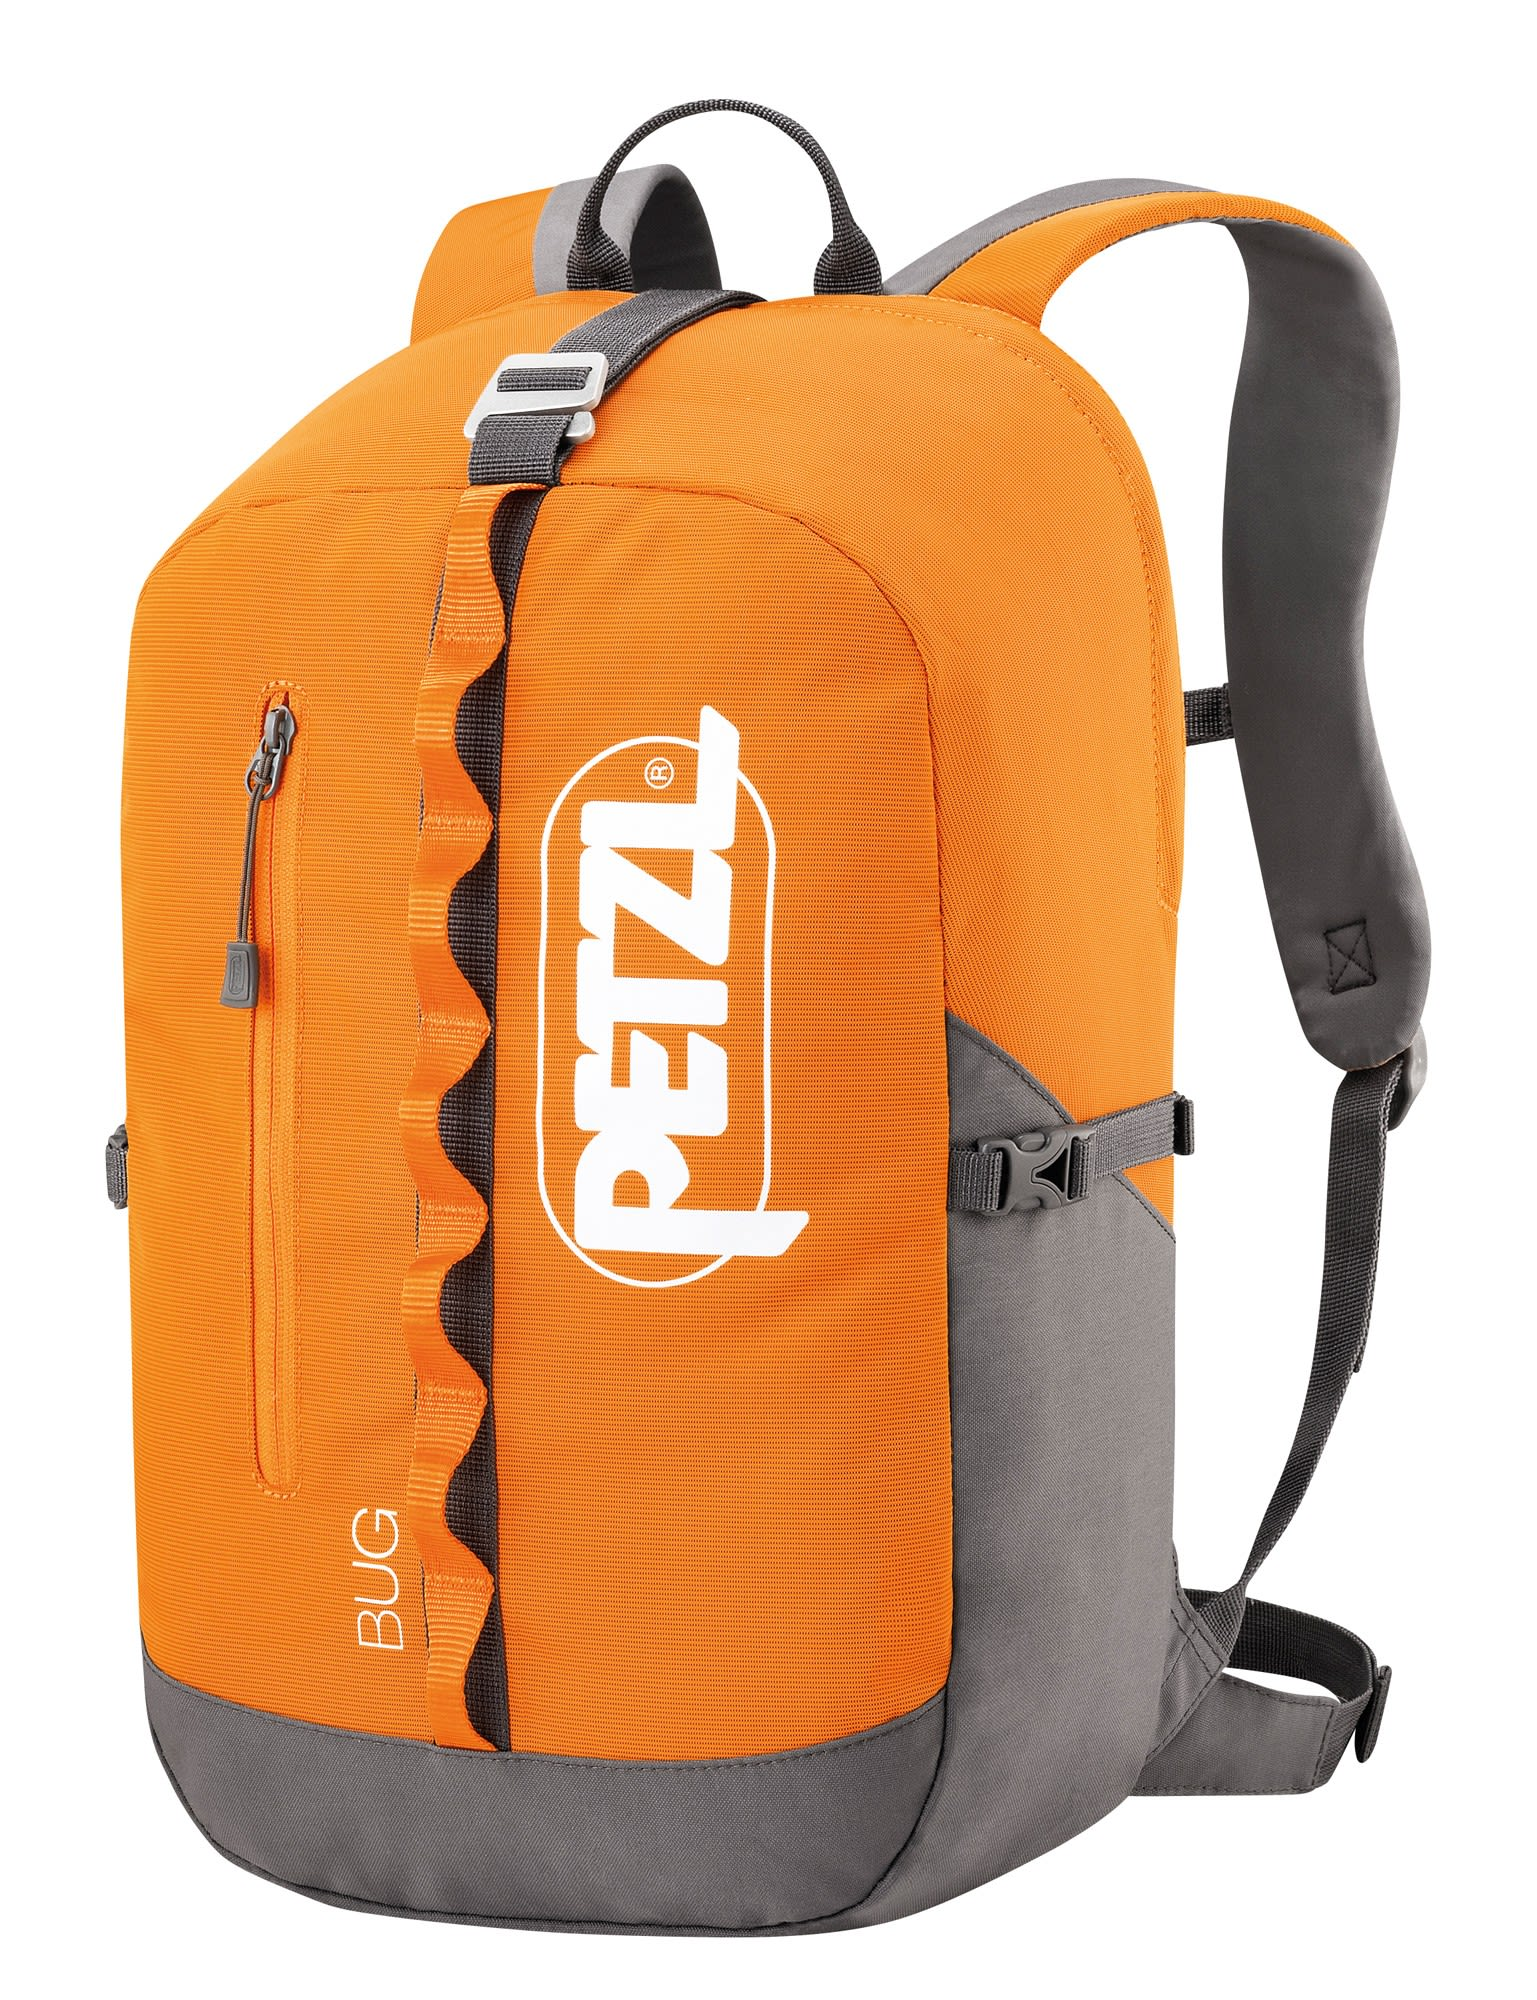 Petzl BUG (Modell Winter 2018) Orange, Kletterrucksack & Seilsack, 18l